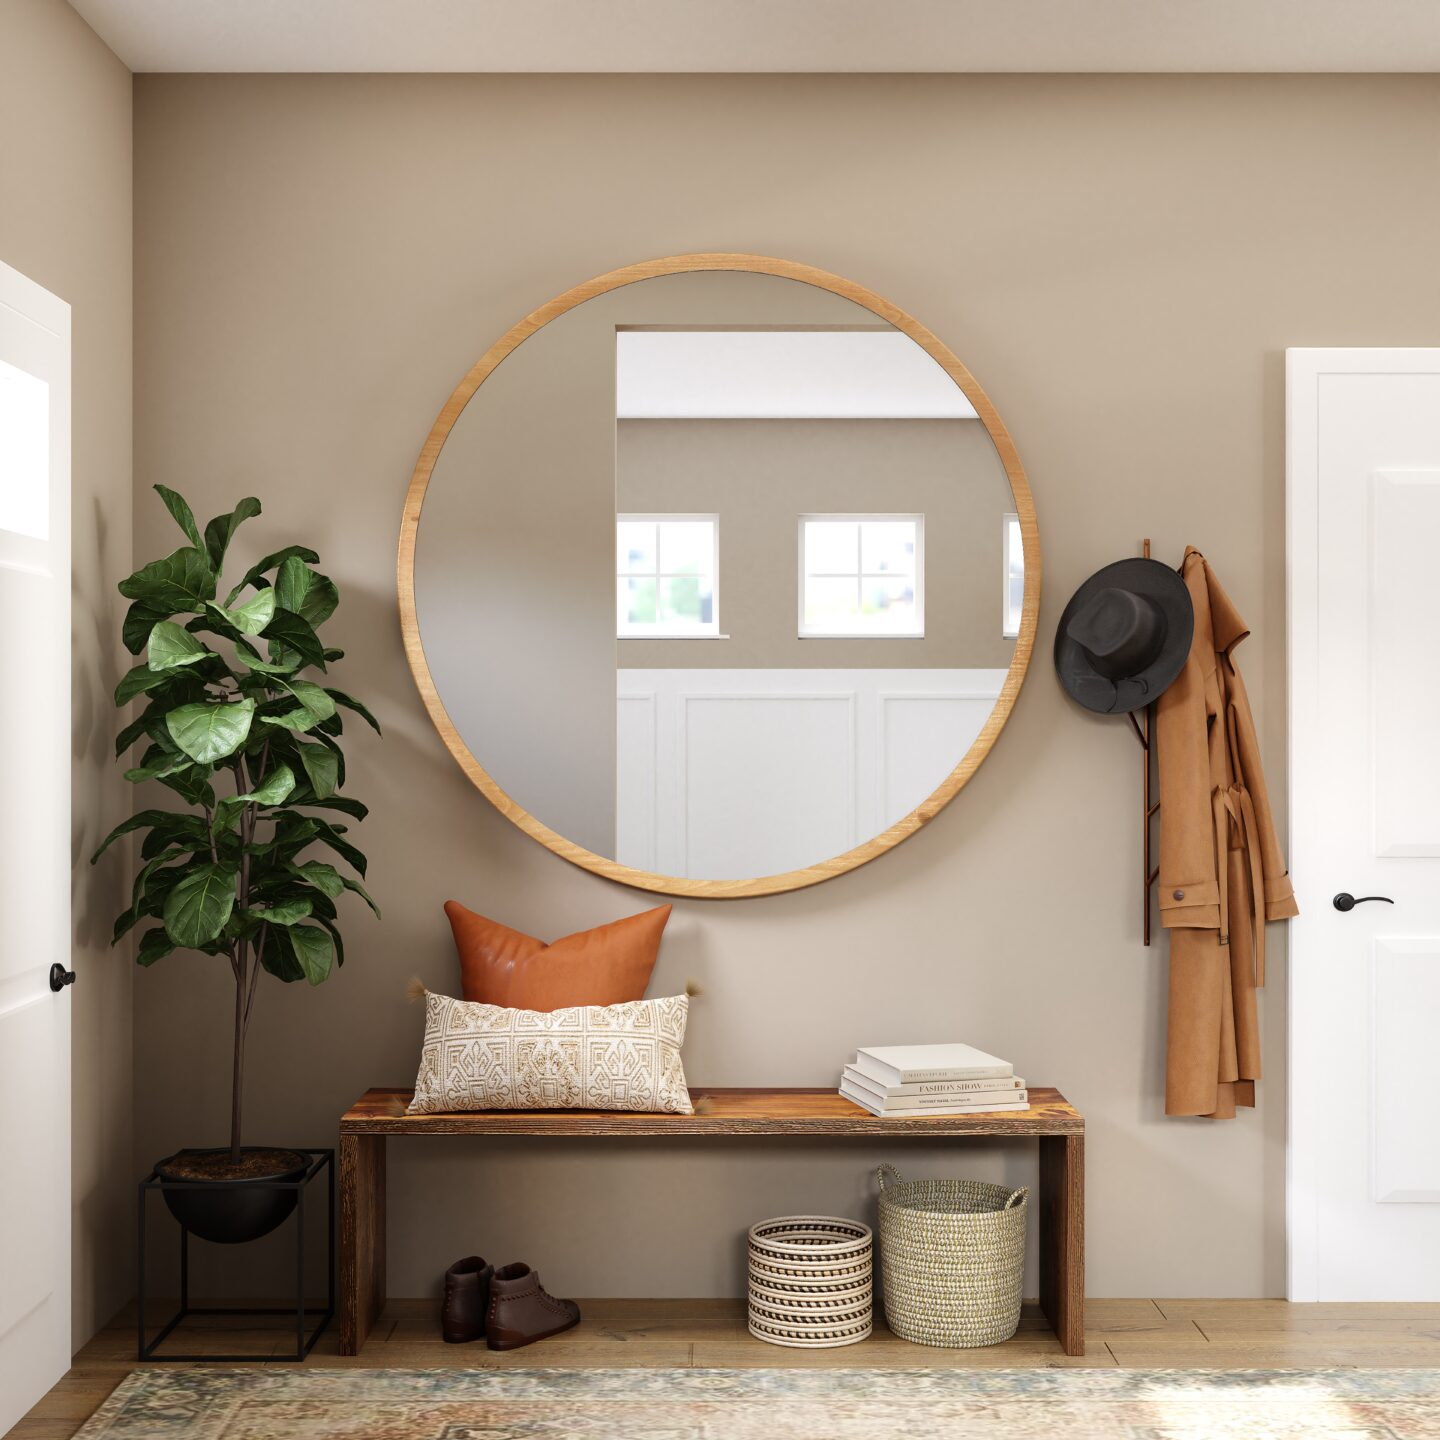 5 Decorating Mistakes You Should Avoid